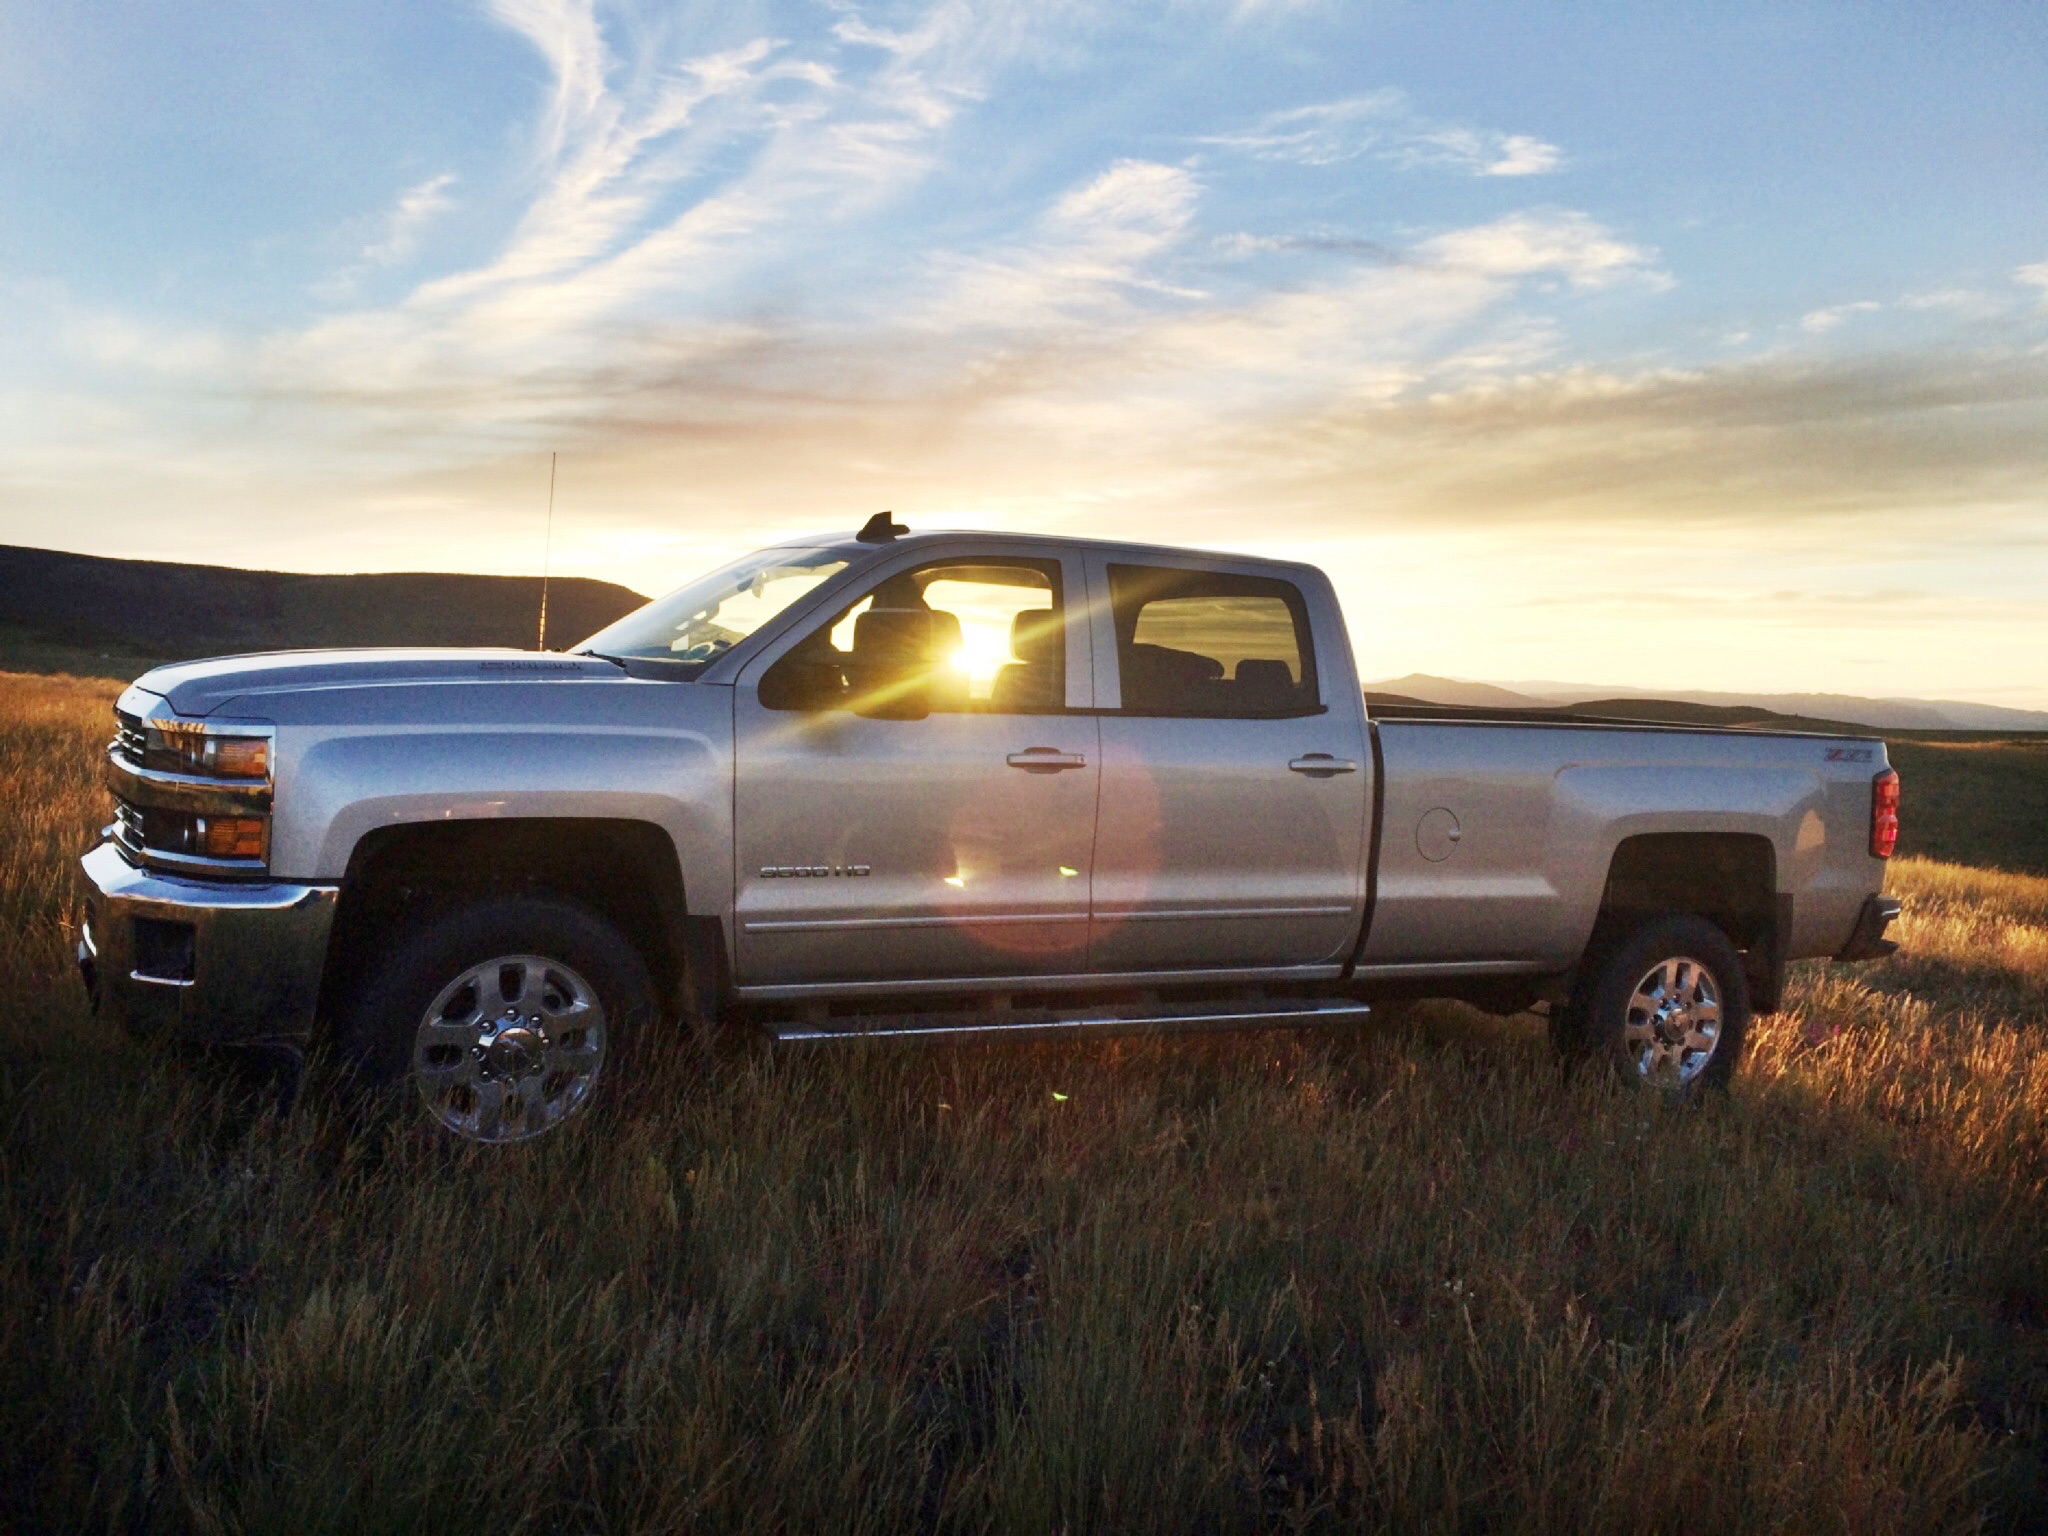 Our new Chevy Duramax visits the cabin for the first time.